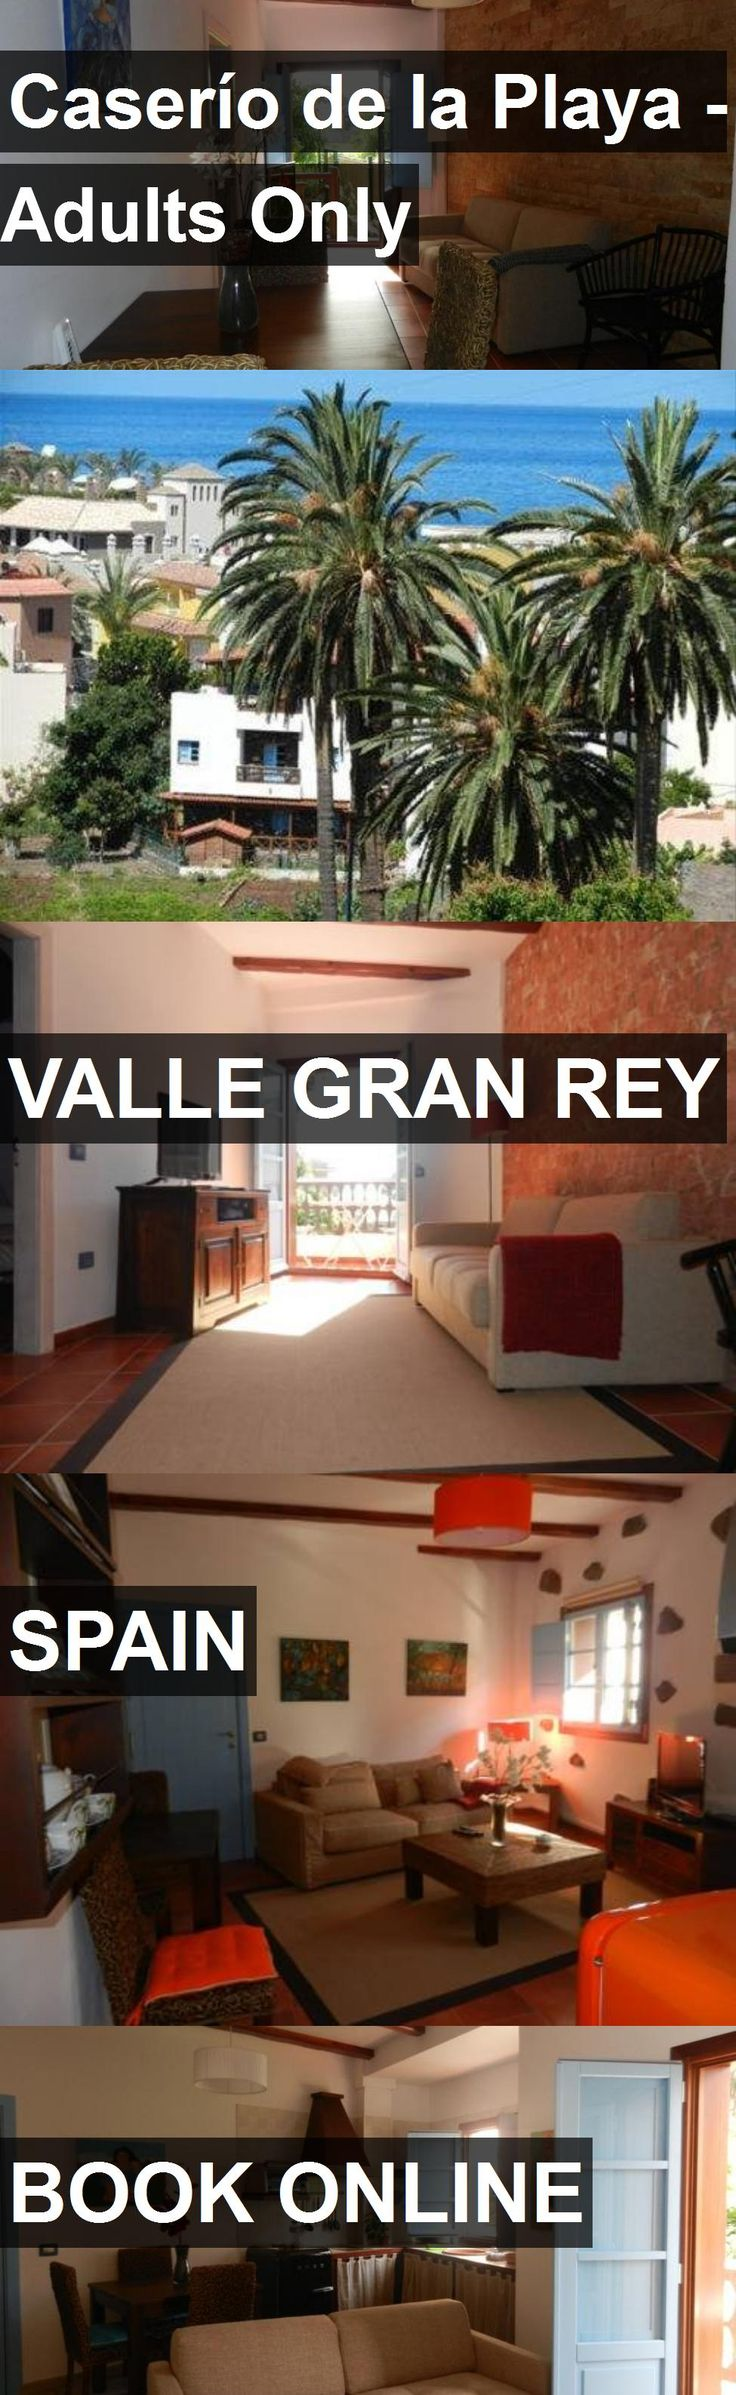 Hotel Caserío de la Playa - Adults Only in Valle Gran Rey, Spain. For more information, photos, reviews and best prices please follow the link. #Spain #ValleGranRey #travel #vacation #hotel